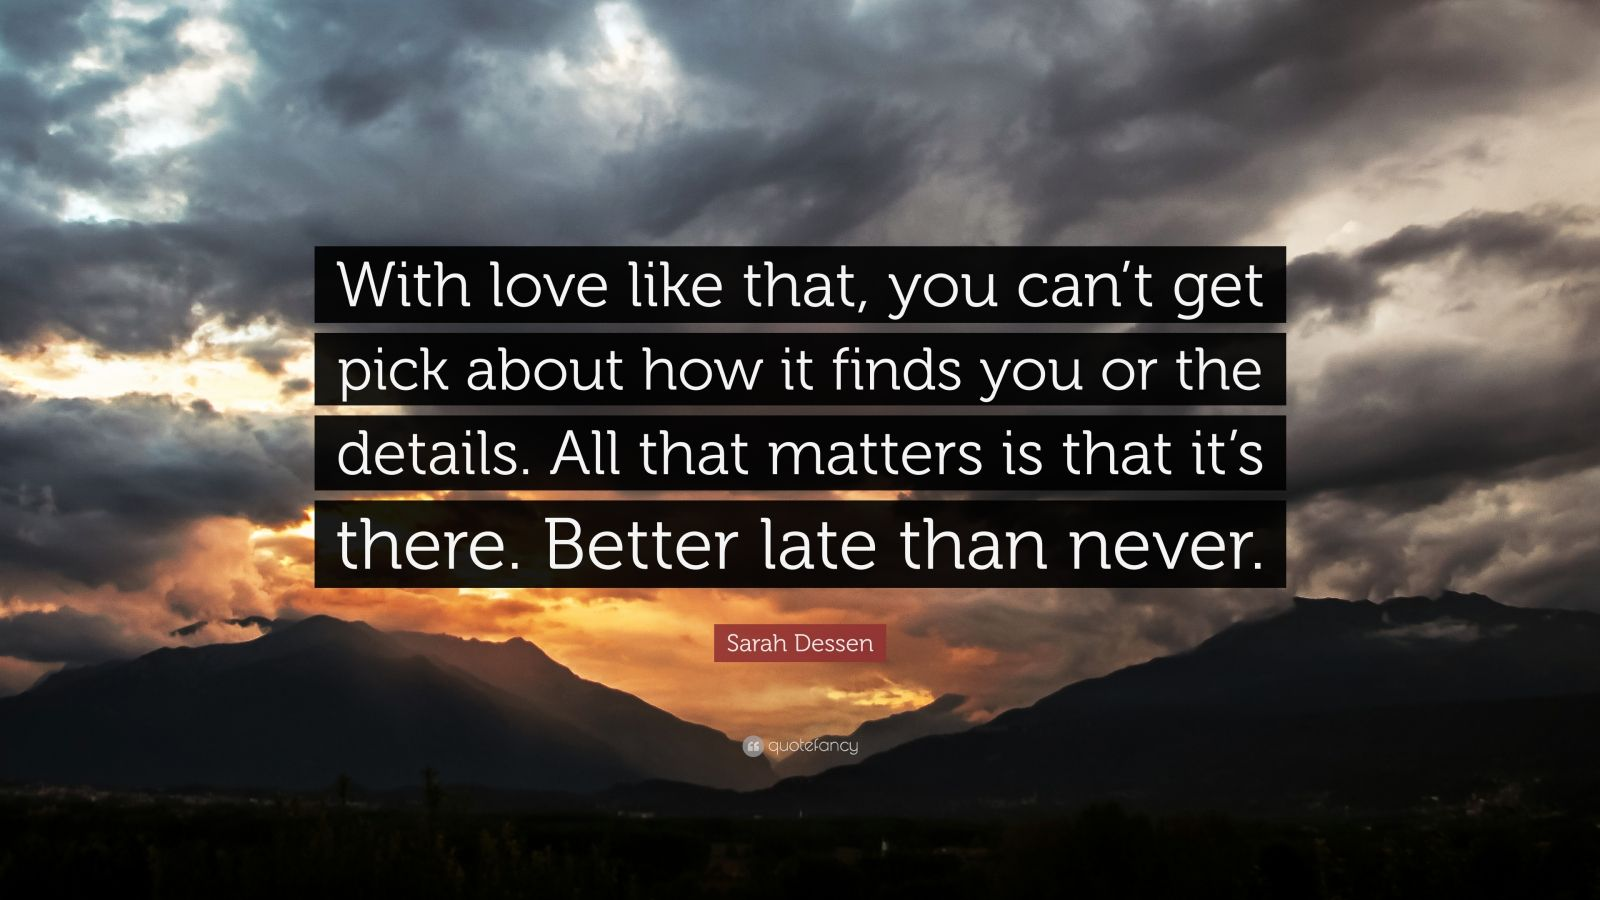 """Sarah Dessen Quote: """"With love like that, you can't get pick about how it finds you or the details. All that matters is that it's there. Better late than never."""""""